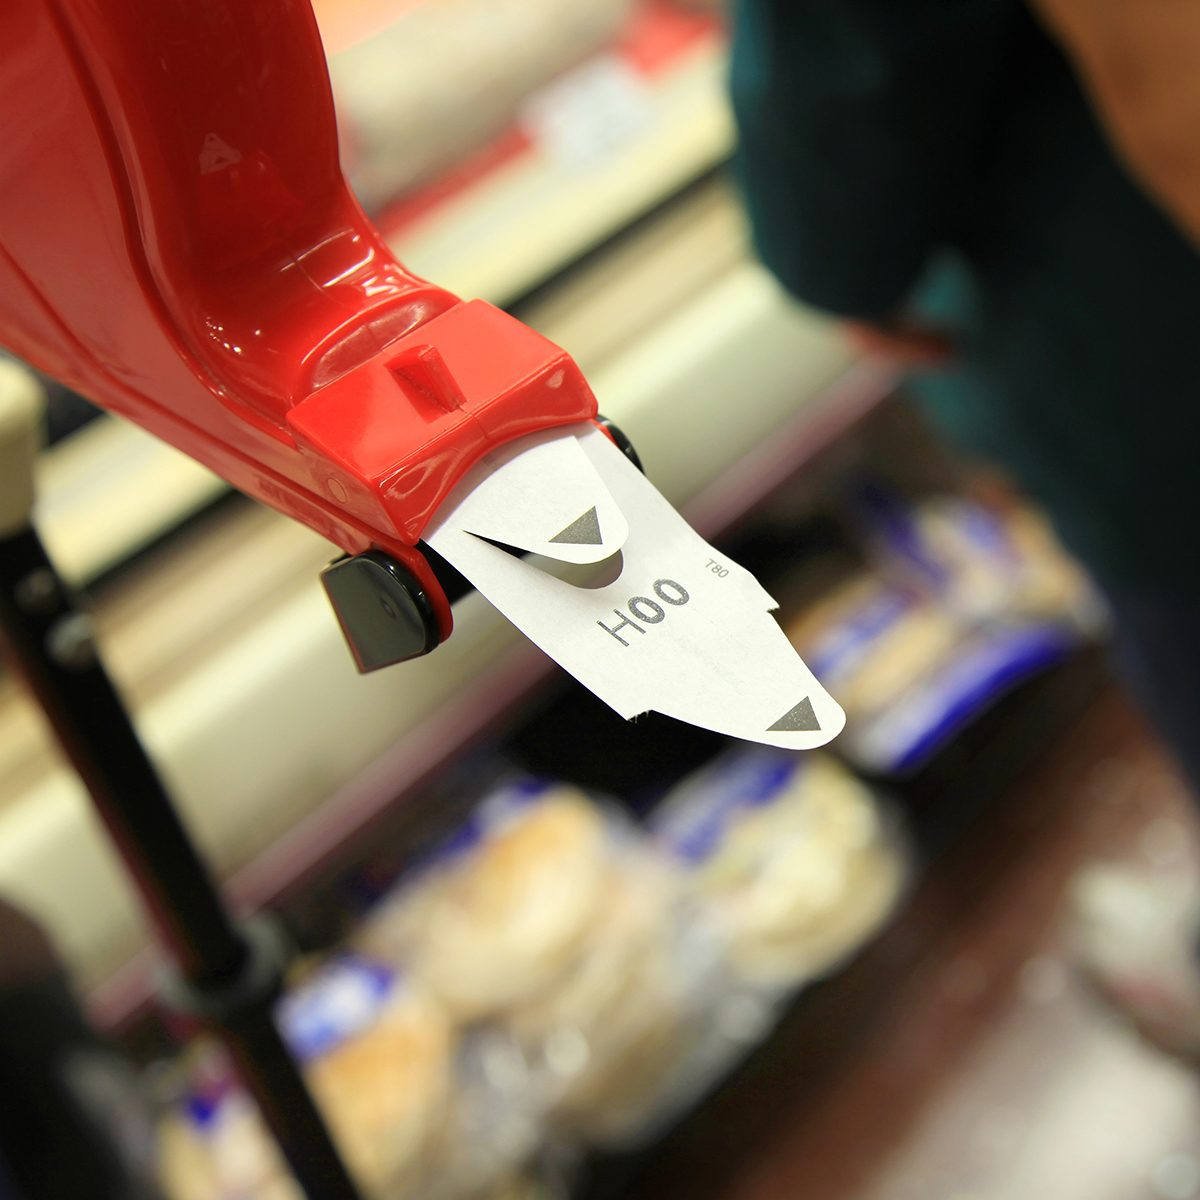 A customer is standing next to a ticket number dispenser at a grocery store, meat section.